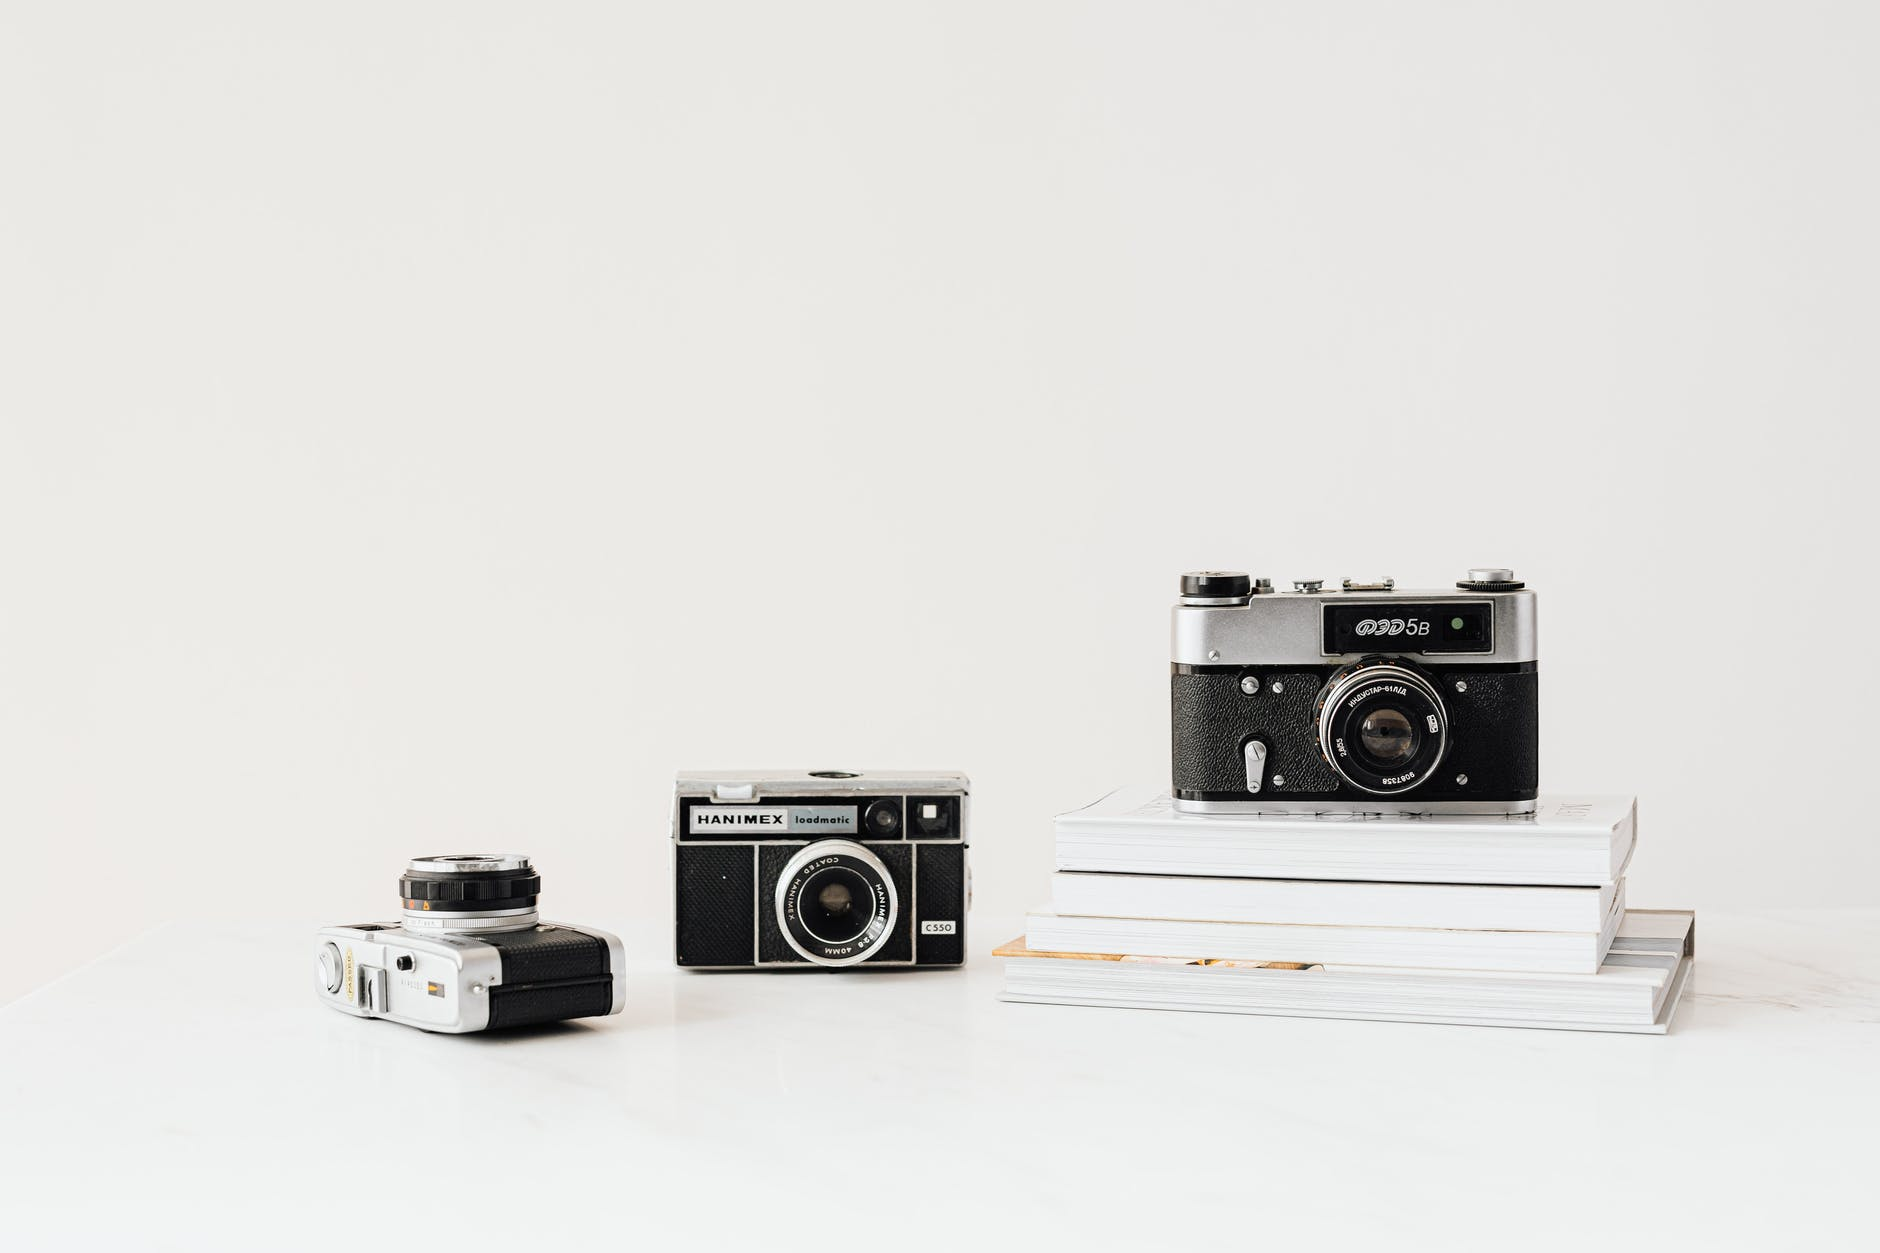 cameras on white background